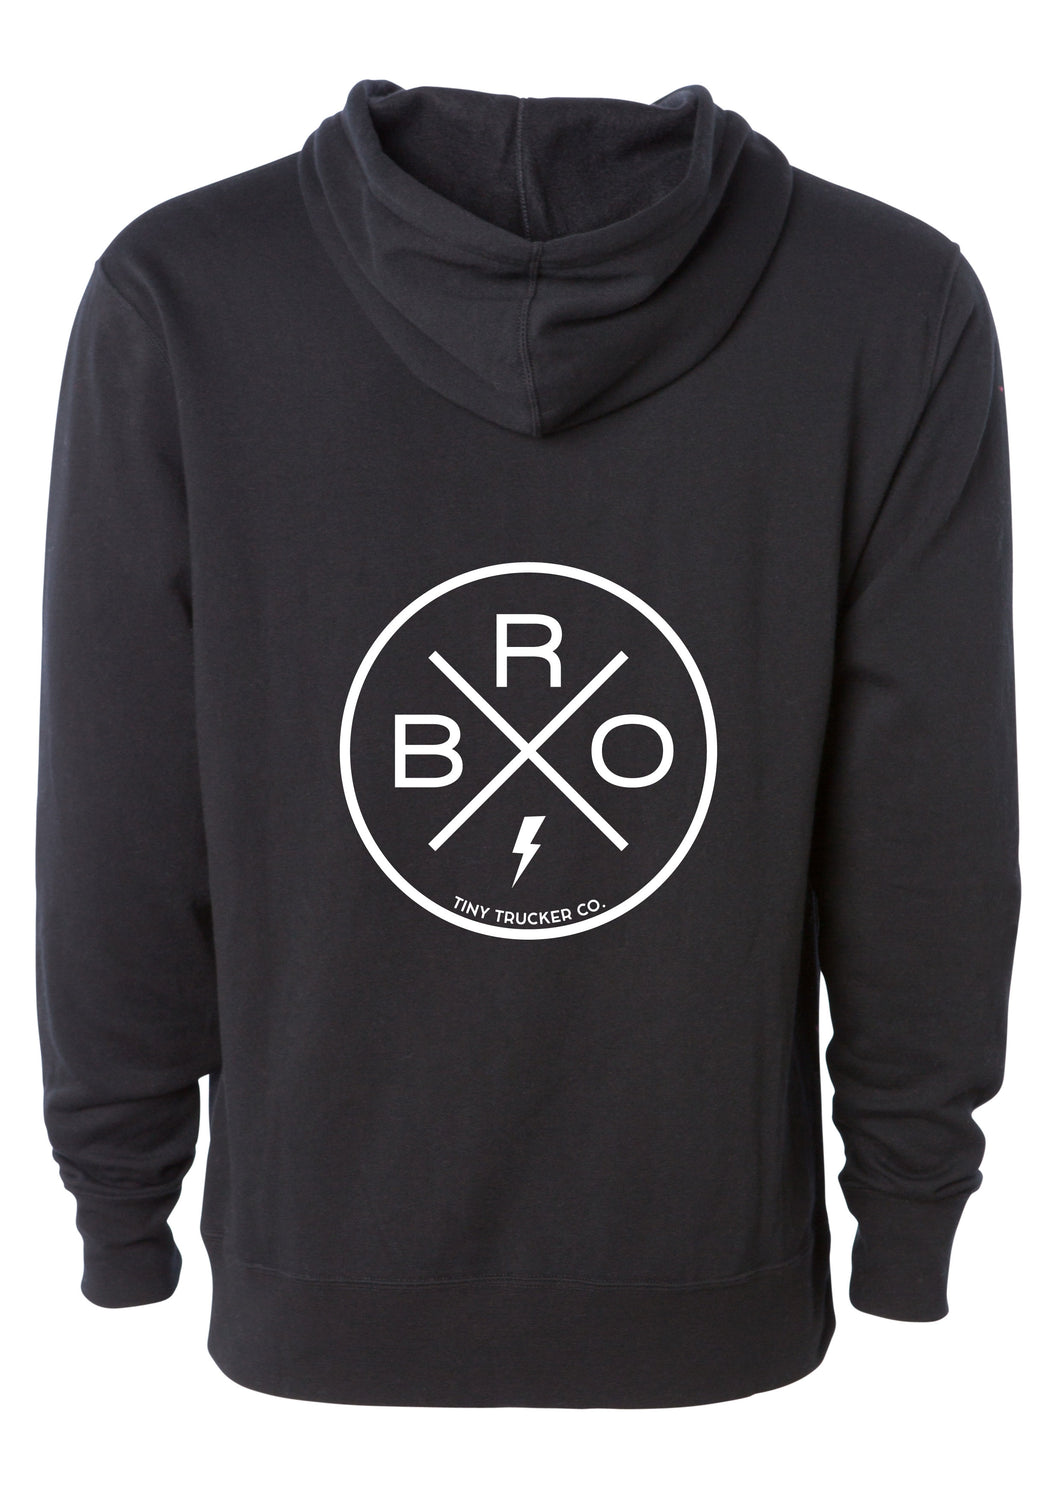 BRO ZIP UP SWEATSHIRT